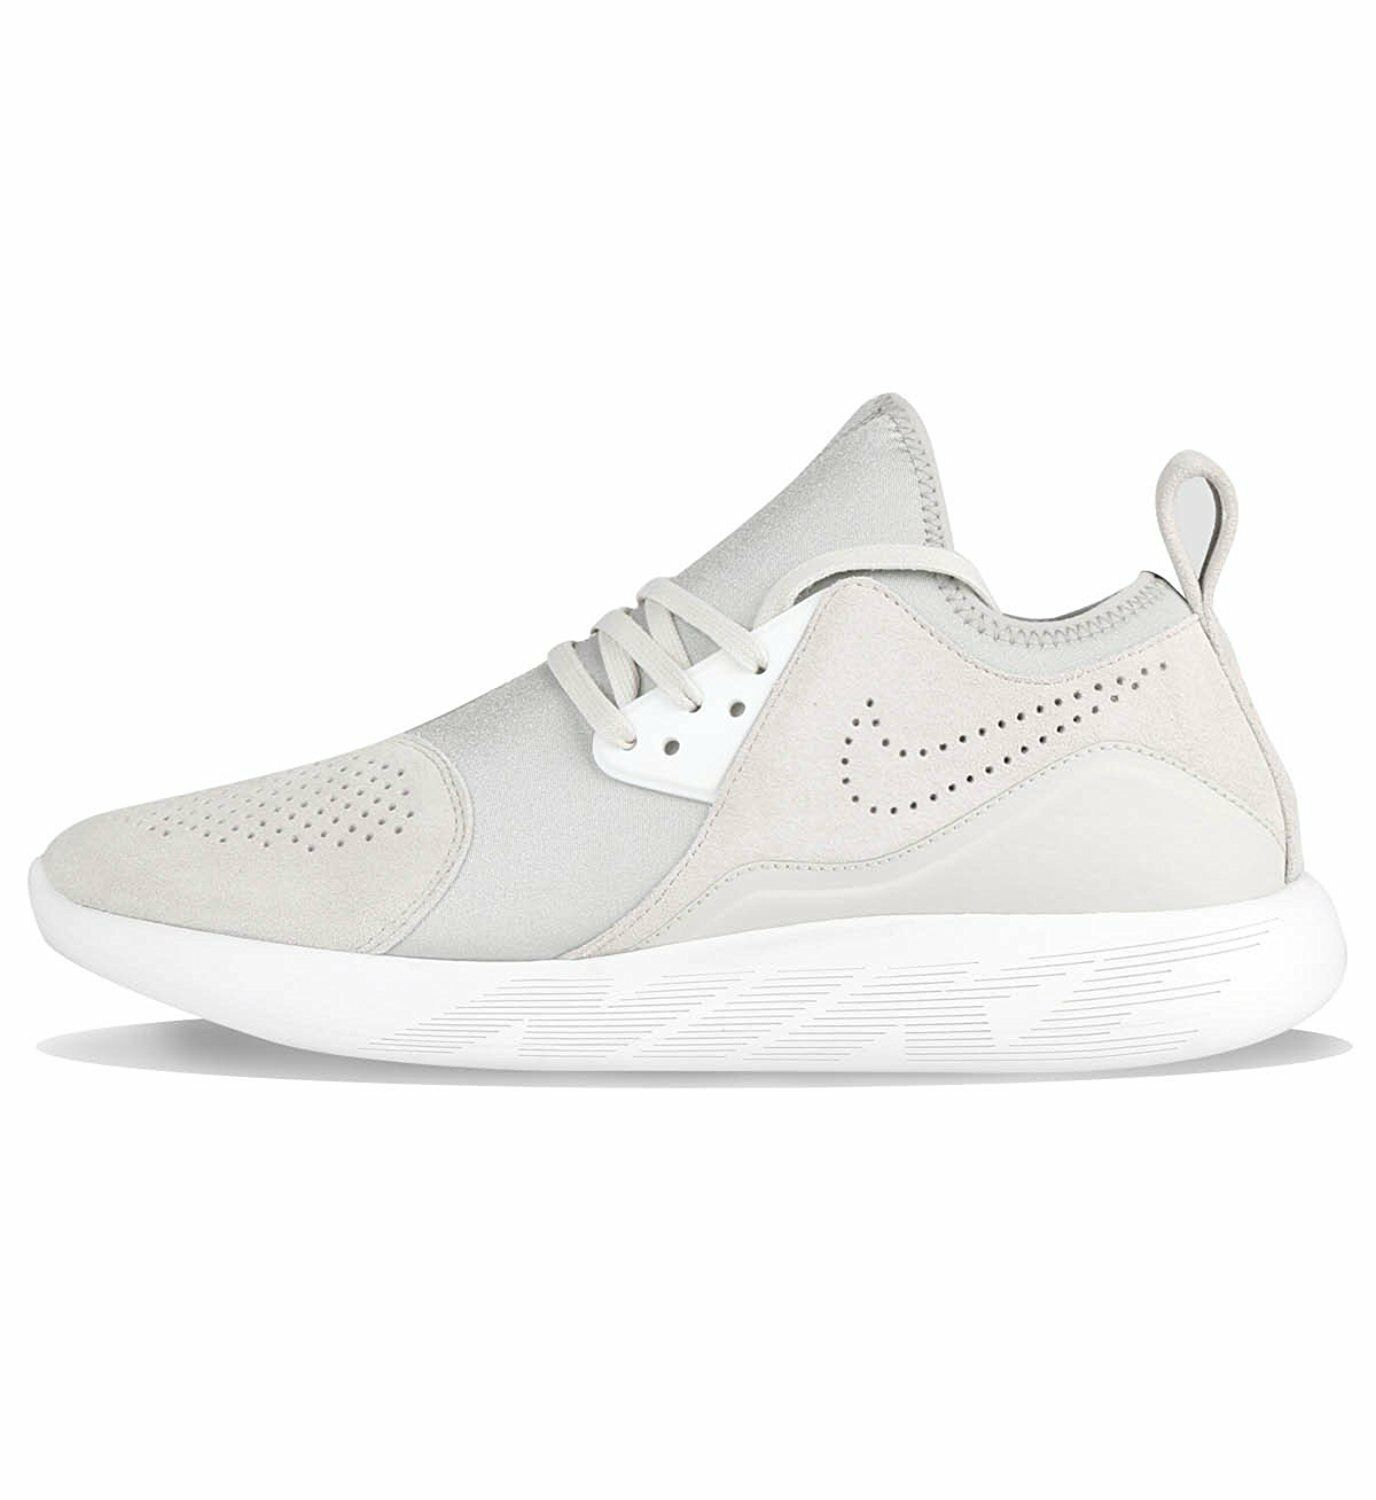 new arrival 797bf 3b510 Nike Nike Nike Lunarcharge Premium Men s Running shoes fc8131